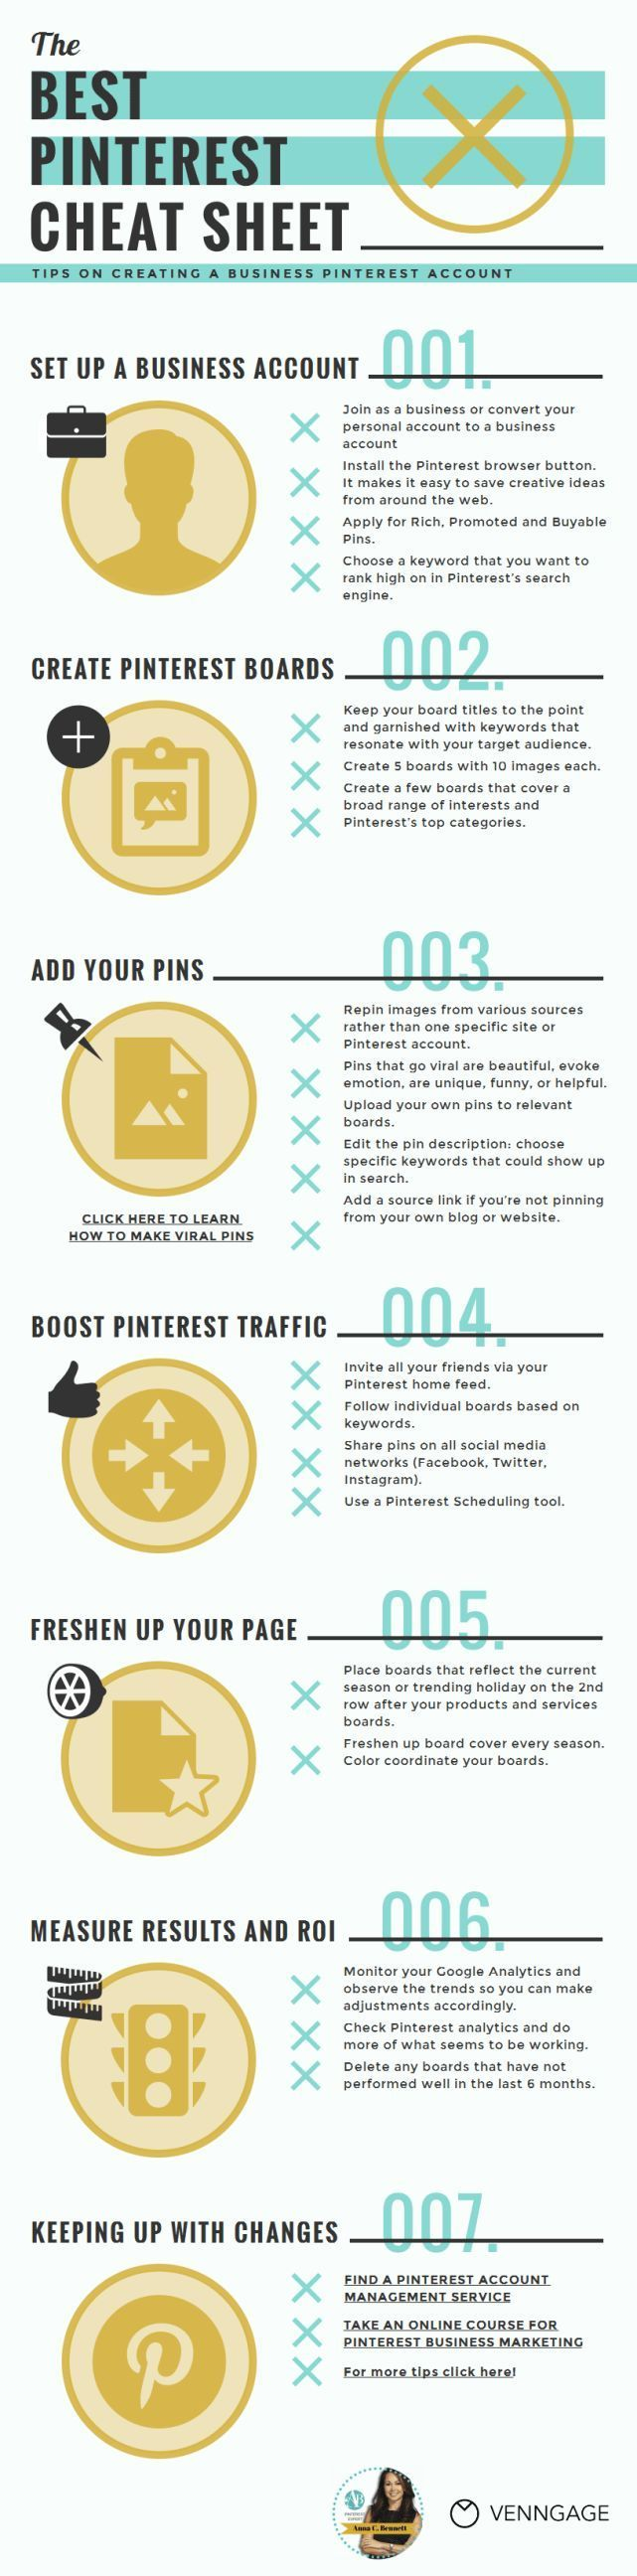 Our brains love visuals and processes images 60,000 times faster than text which is no wonder why infographics receives very high engagement on Pinterest. Here's an infographic that you can easily do for free on @ve Click here to learn more about how to m: